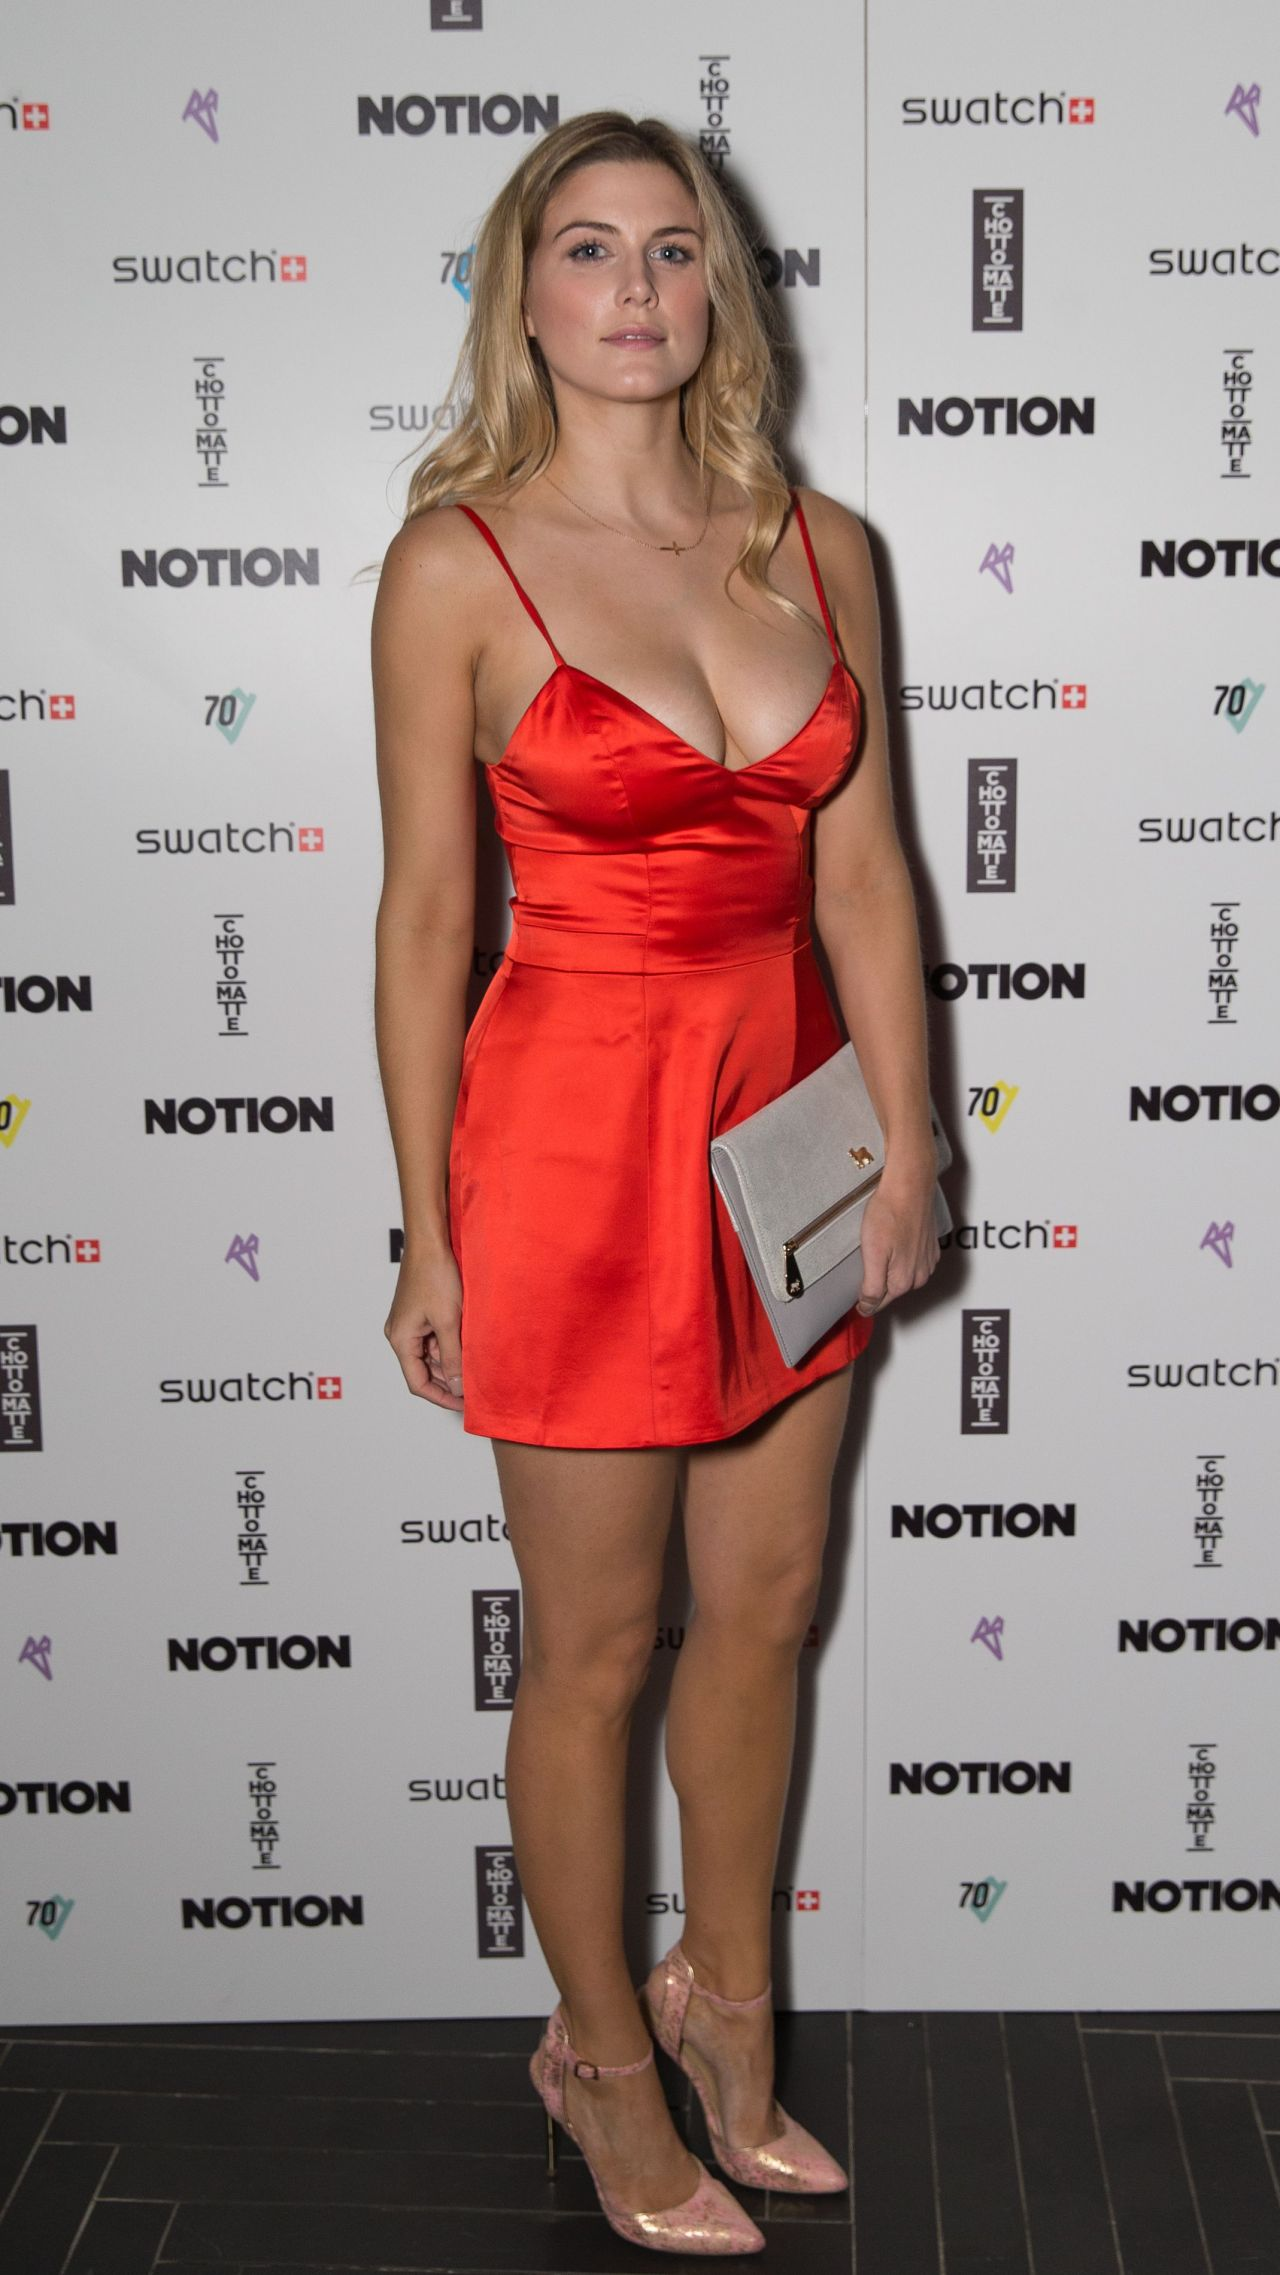 Ashley James Hot Style – Notion Magazine X Swatch Issue 70 Launch Party in London